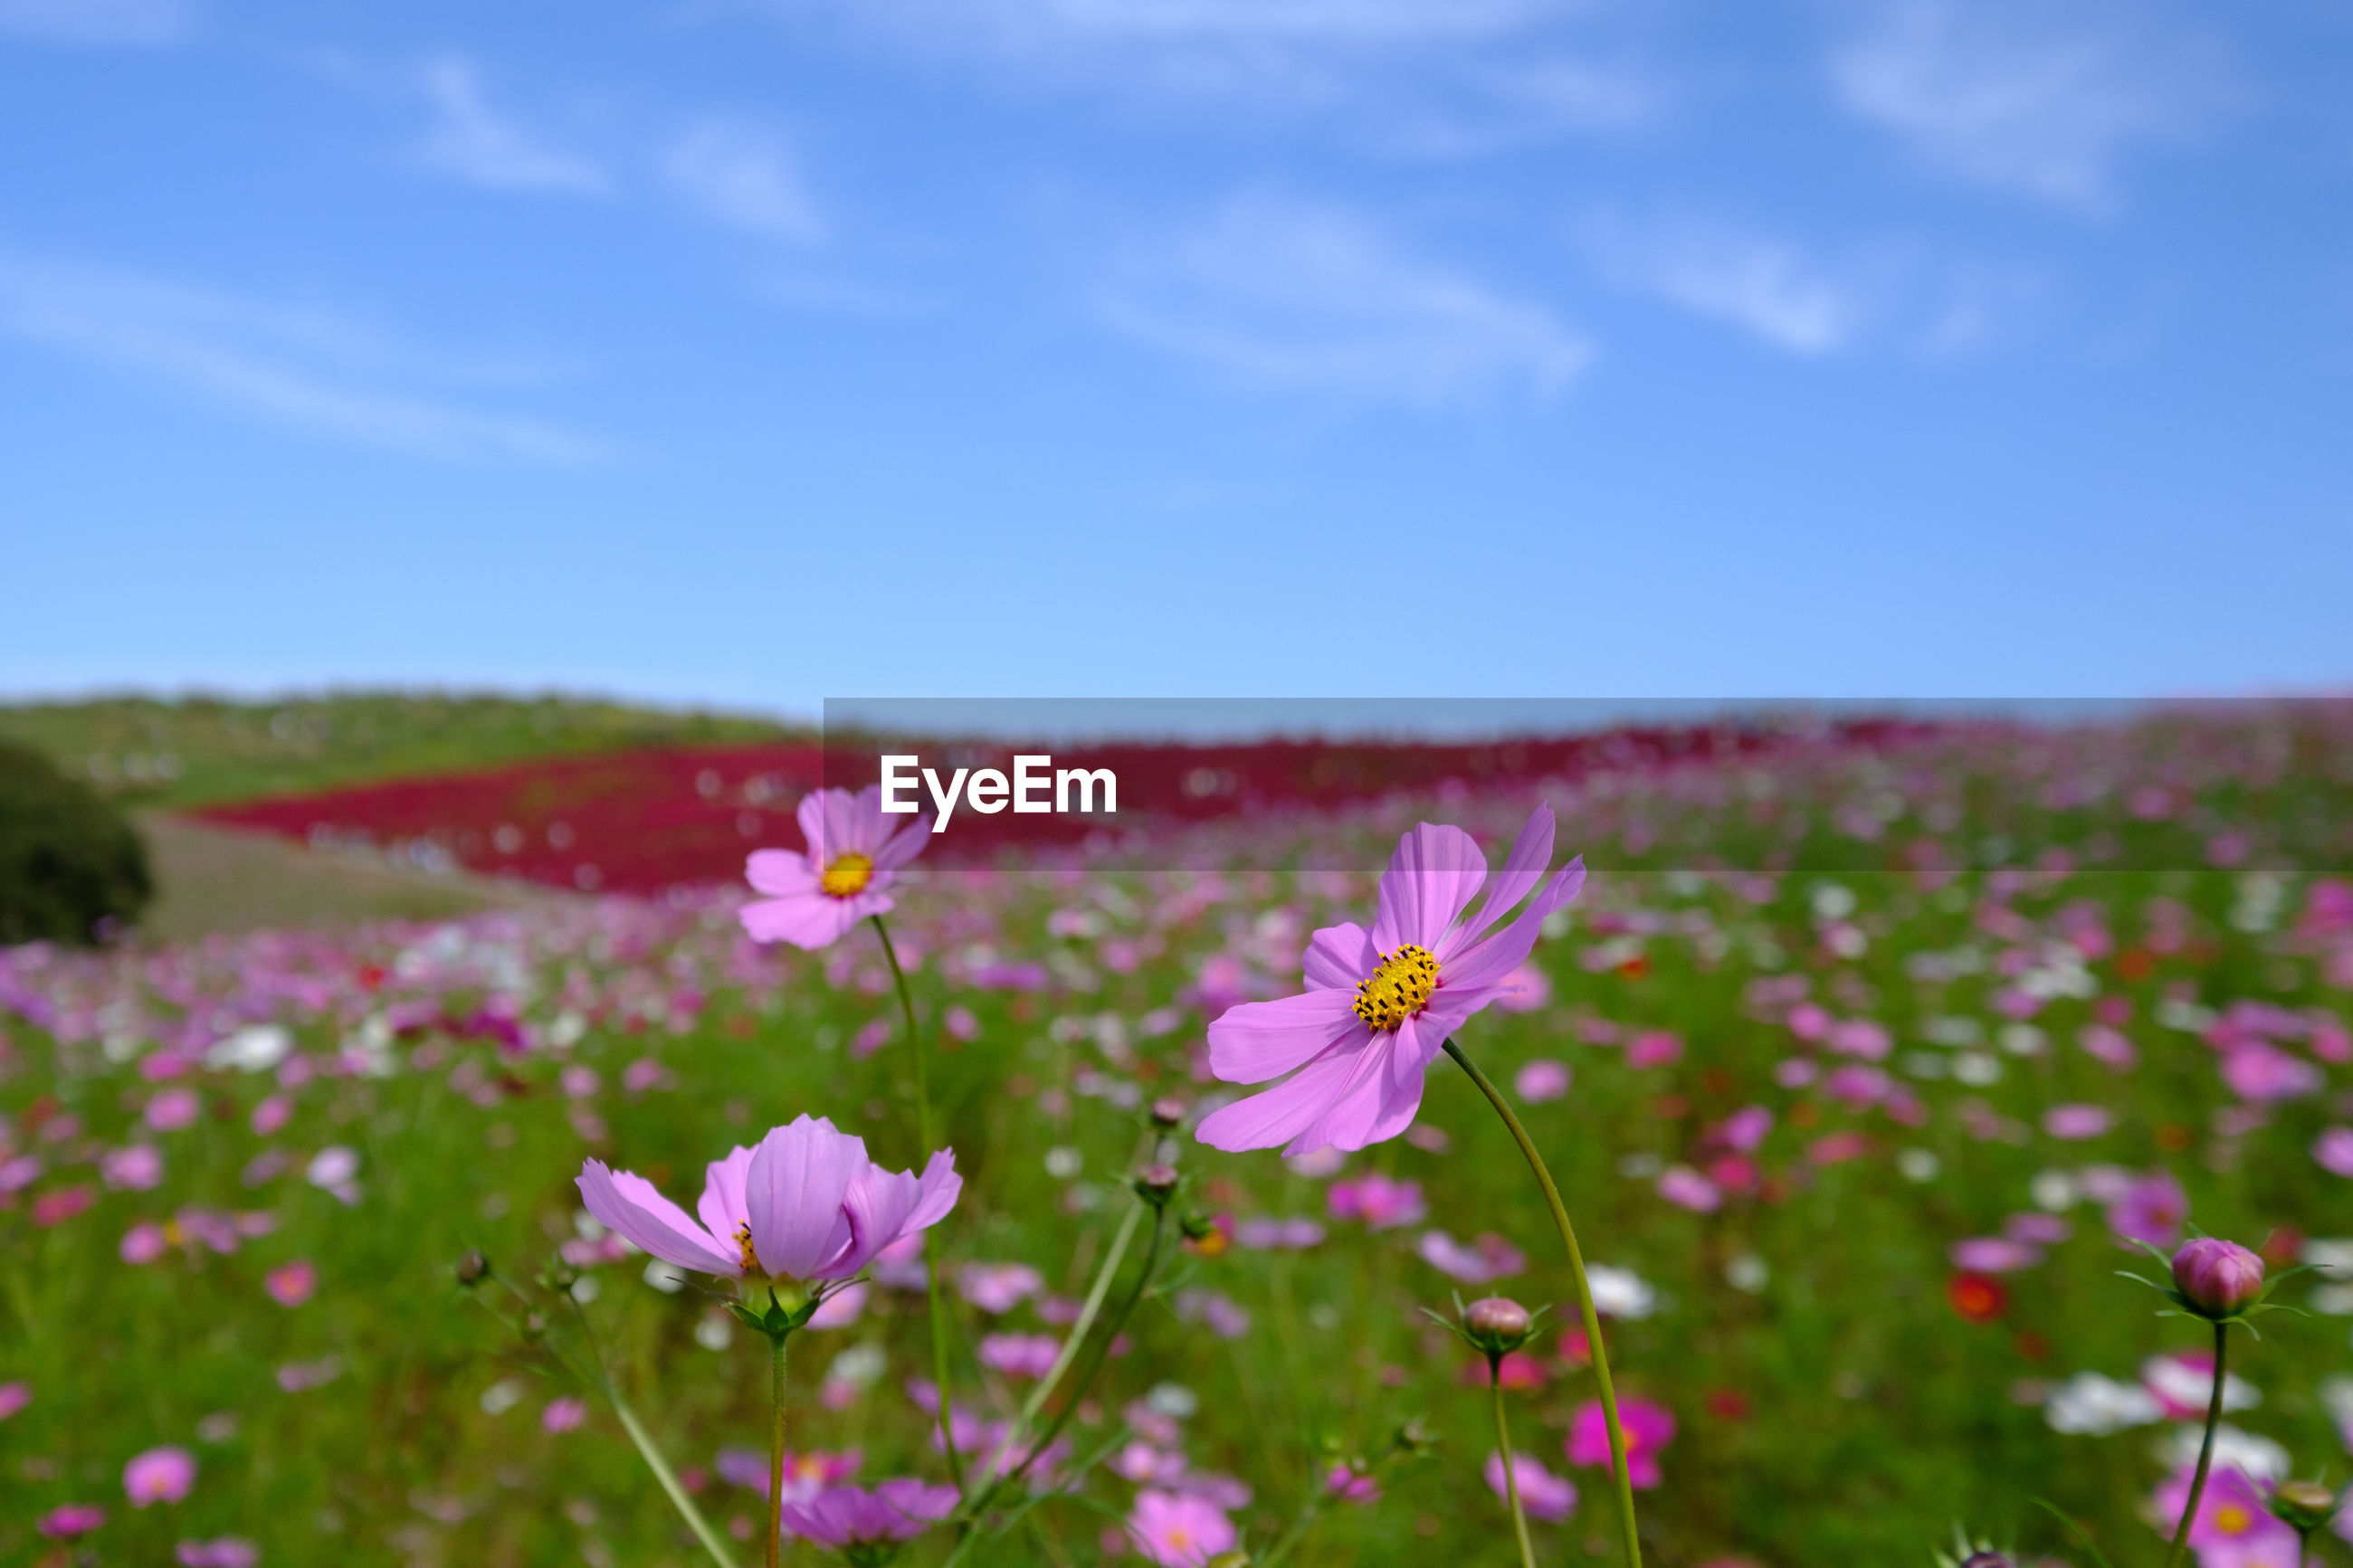 CLOSE-UP OF COSMOS BLOOMING ON FIELD AGAINST SKY